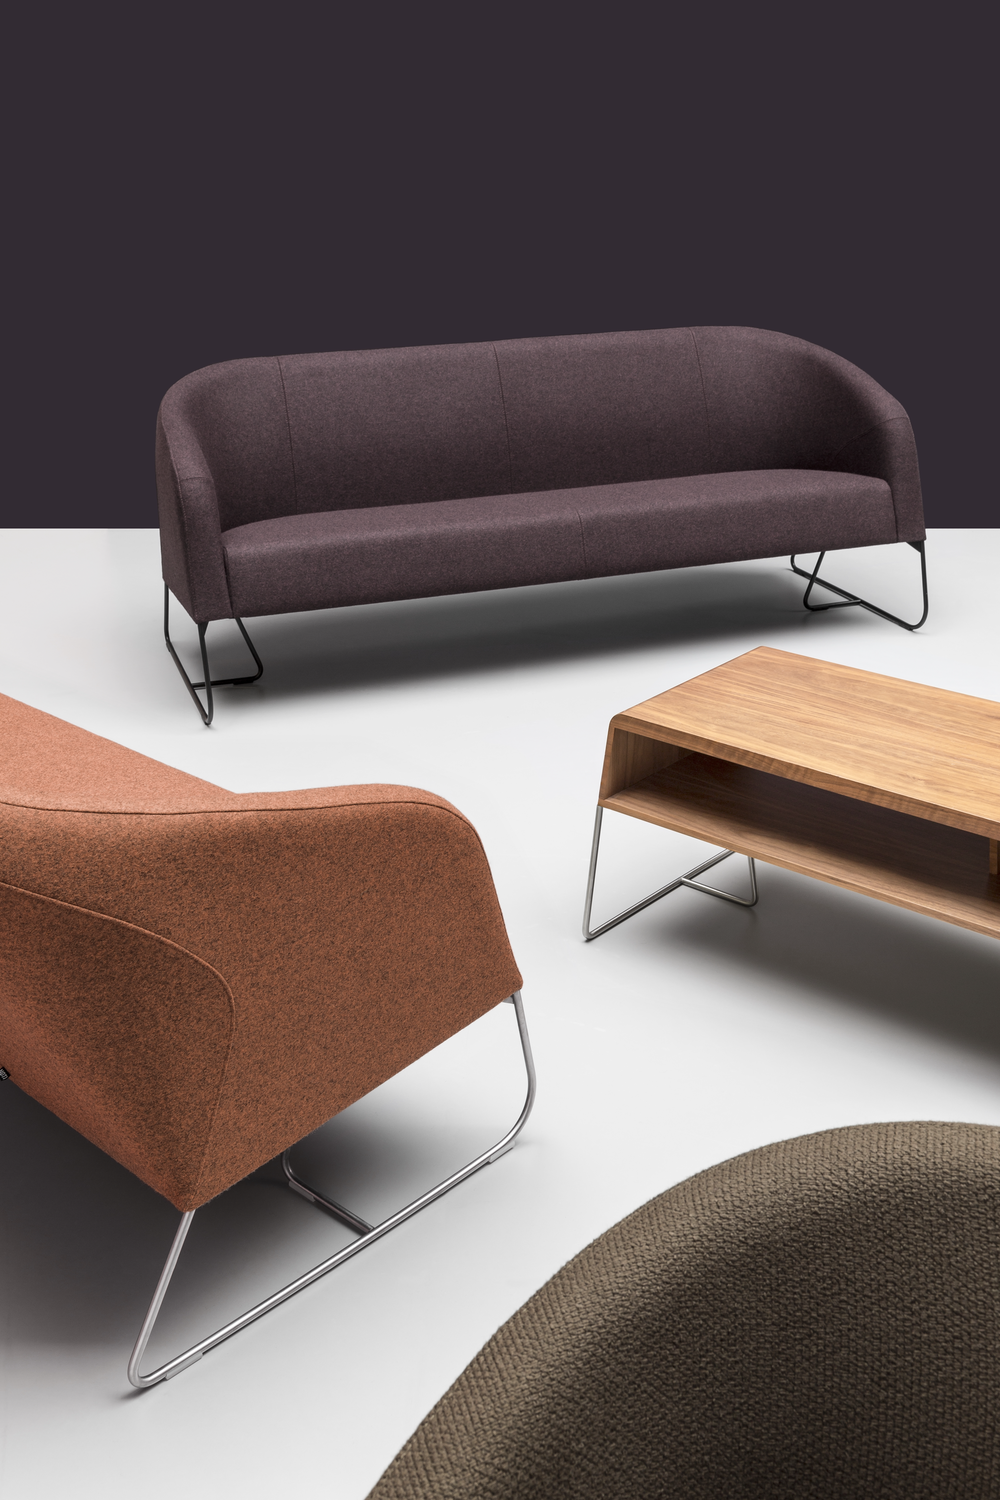 Mula Soft Seating and Table